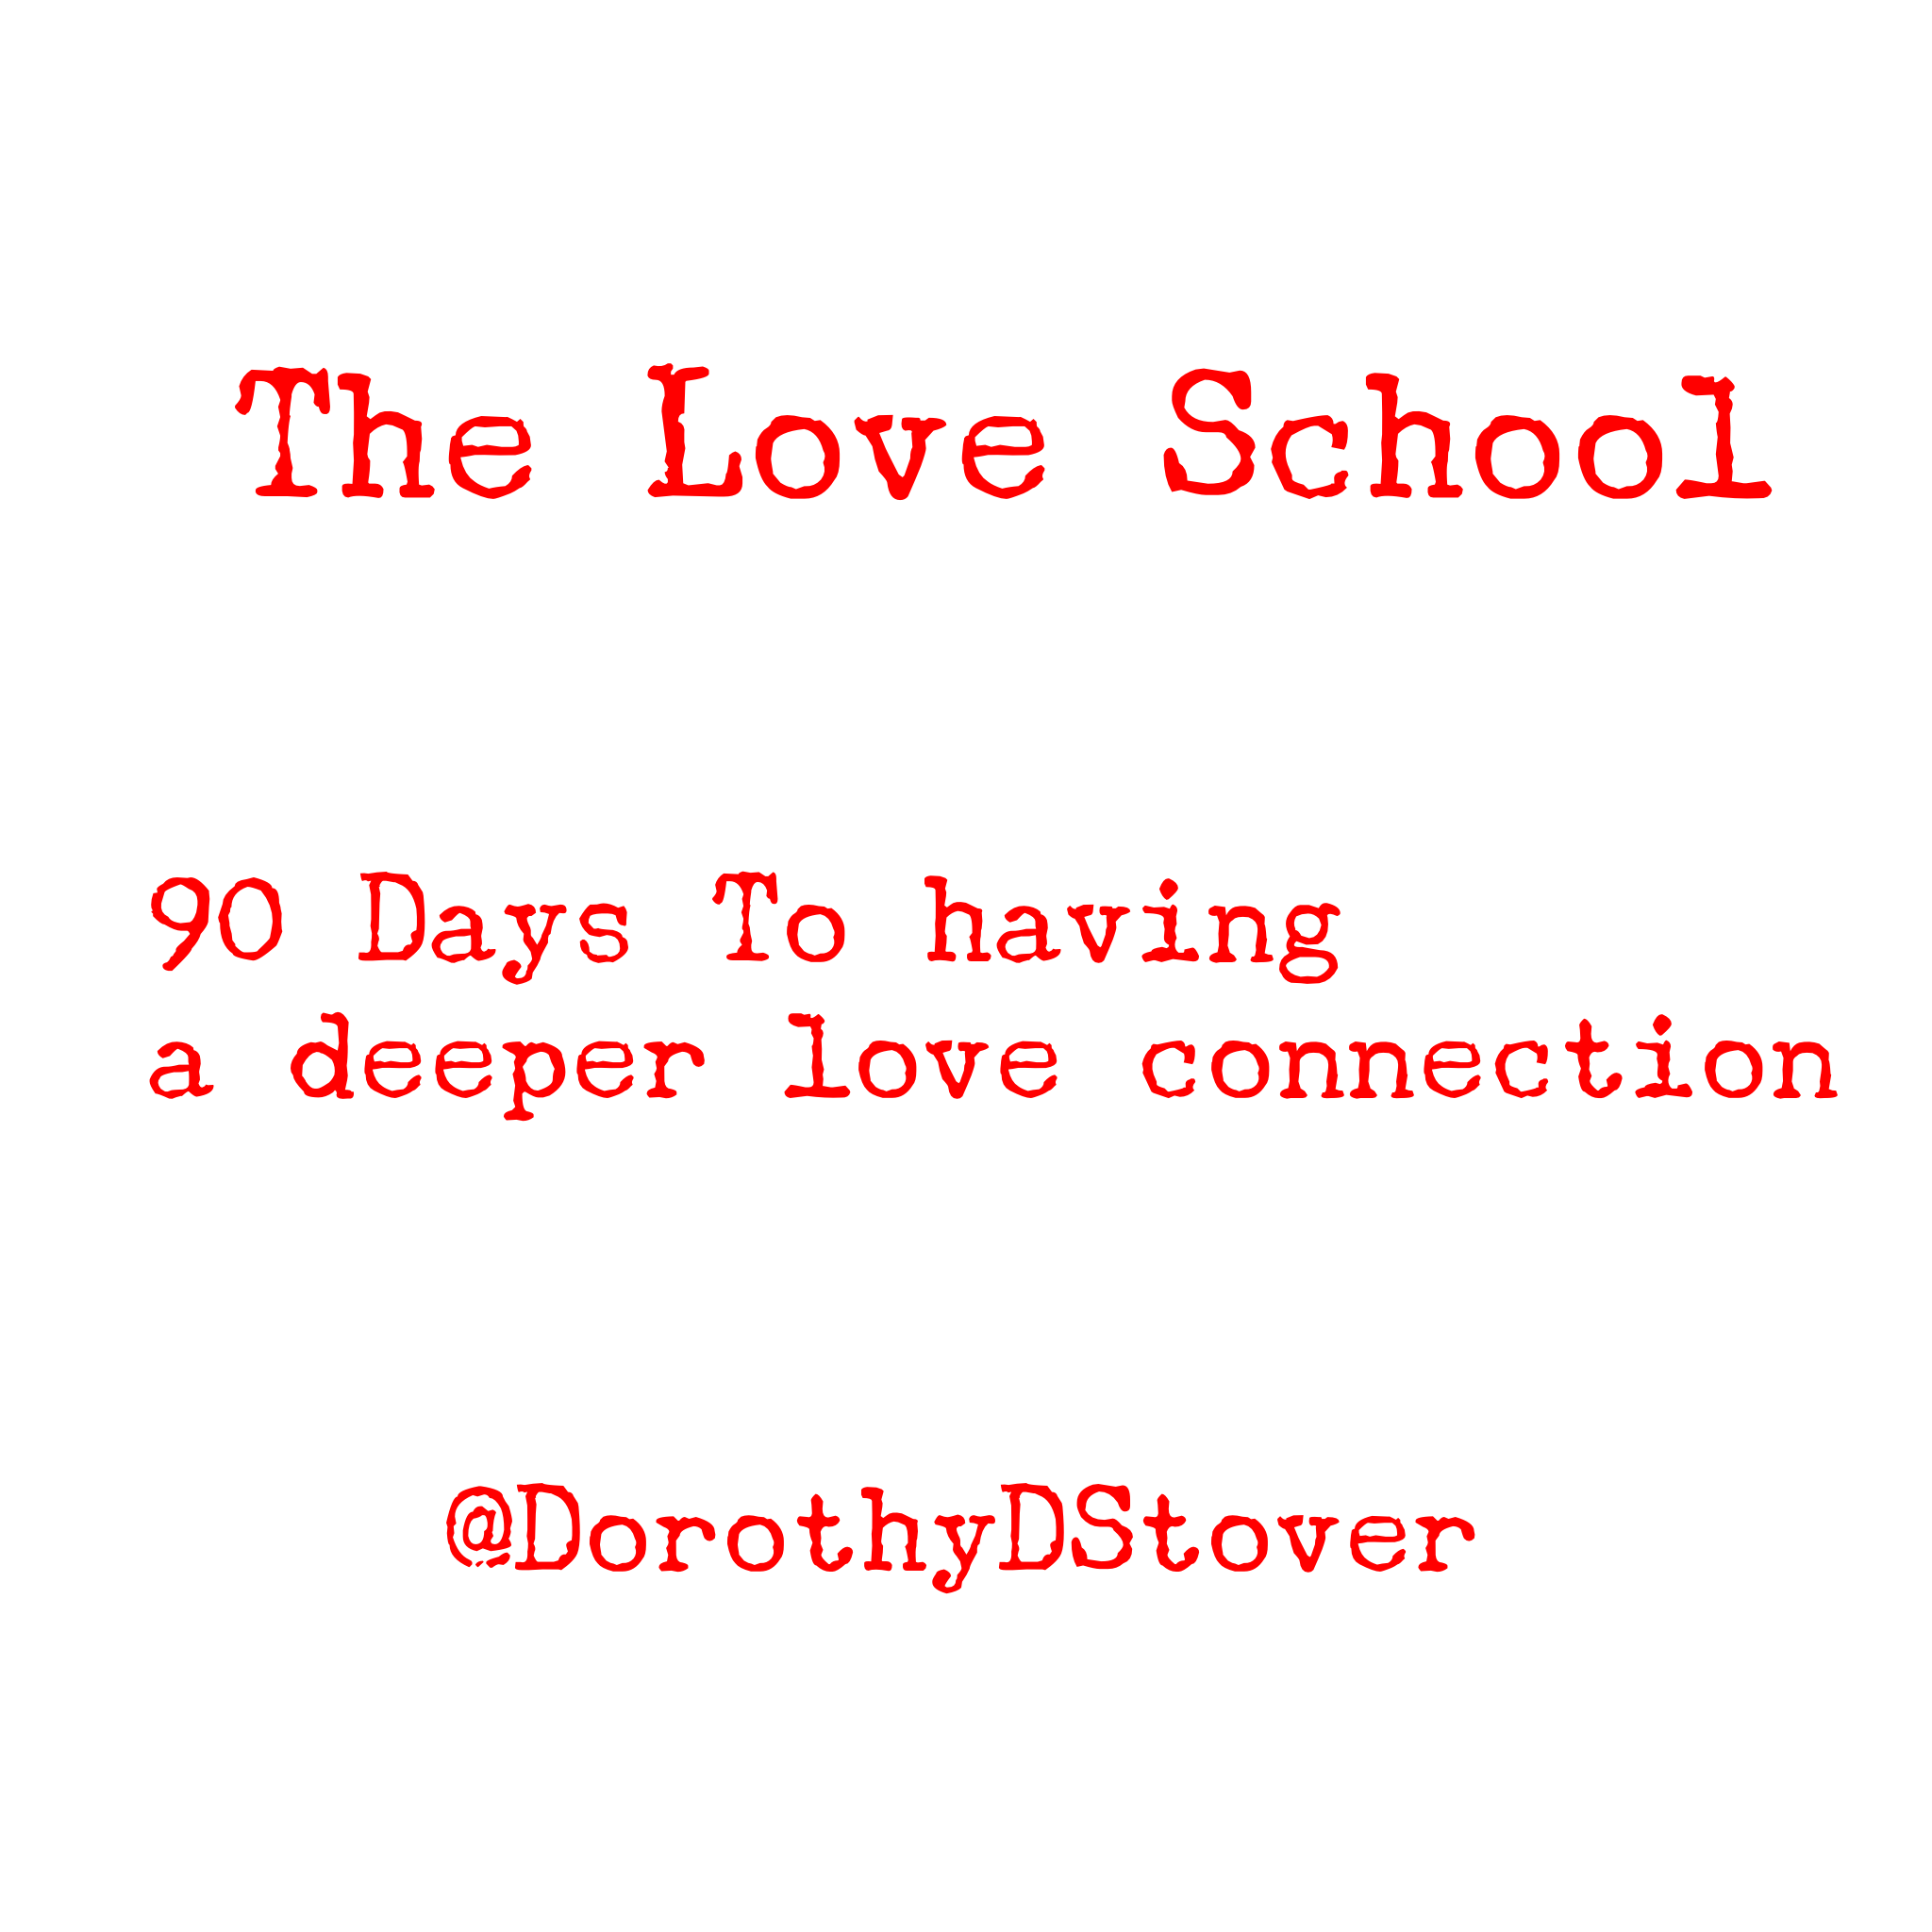 The Love School is for those who want a relationship where they feel deeply connected to their partner while still being true to themselves. The school is built with the idea that most of us don't have enough hours in the day. The Love Lessons take less than 10 minutes a day. Faster than drinking your morning coffee or tea. The Mission of The Love School is to bring more love into the world, one student at a time. This will set a ripple out to all those around each student. We will raise the vibration of us all by doing the love work.